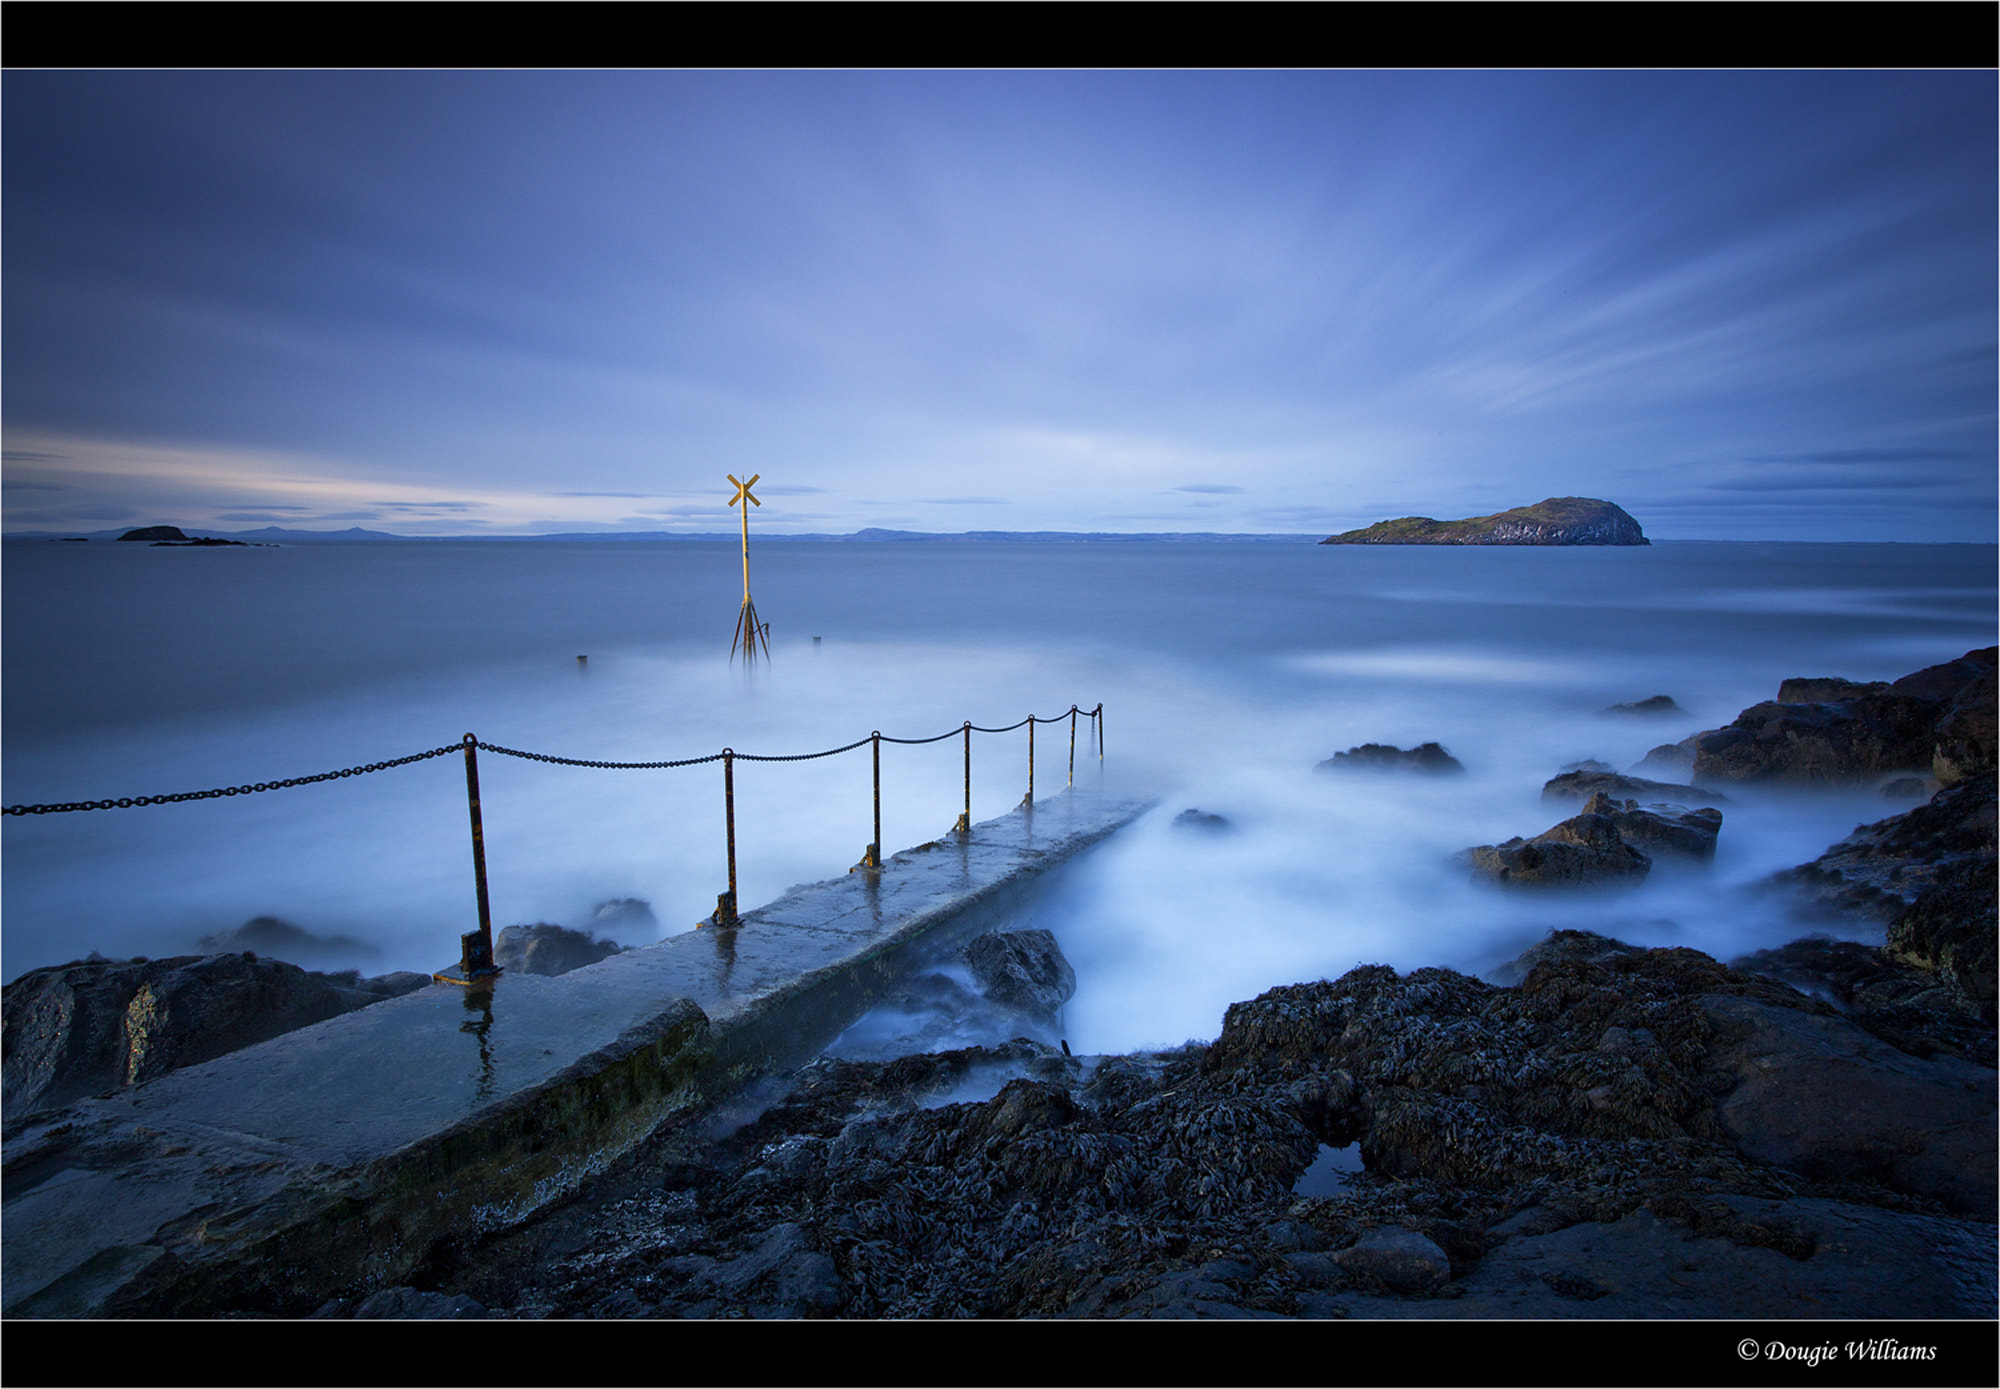 Photograph North Berwick Pier by Dougie Williams on 500px